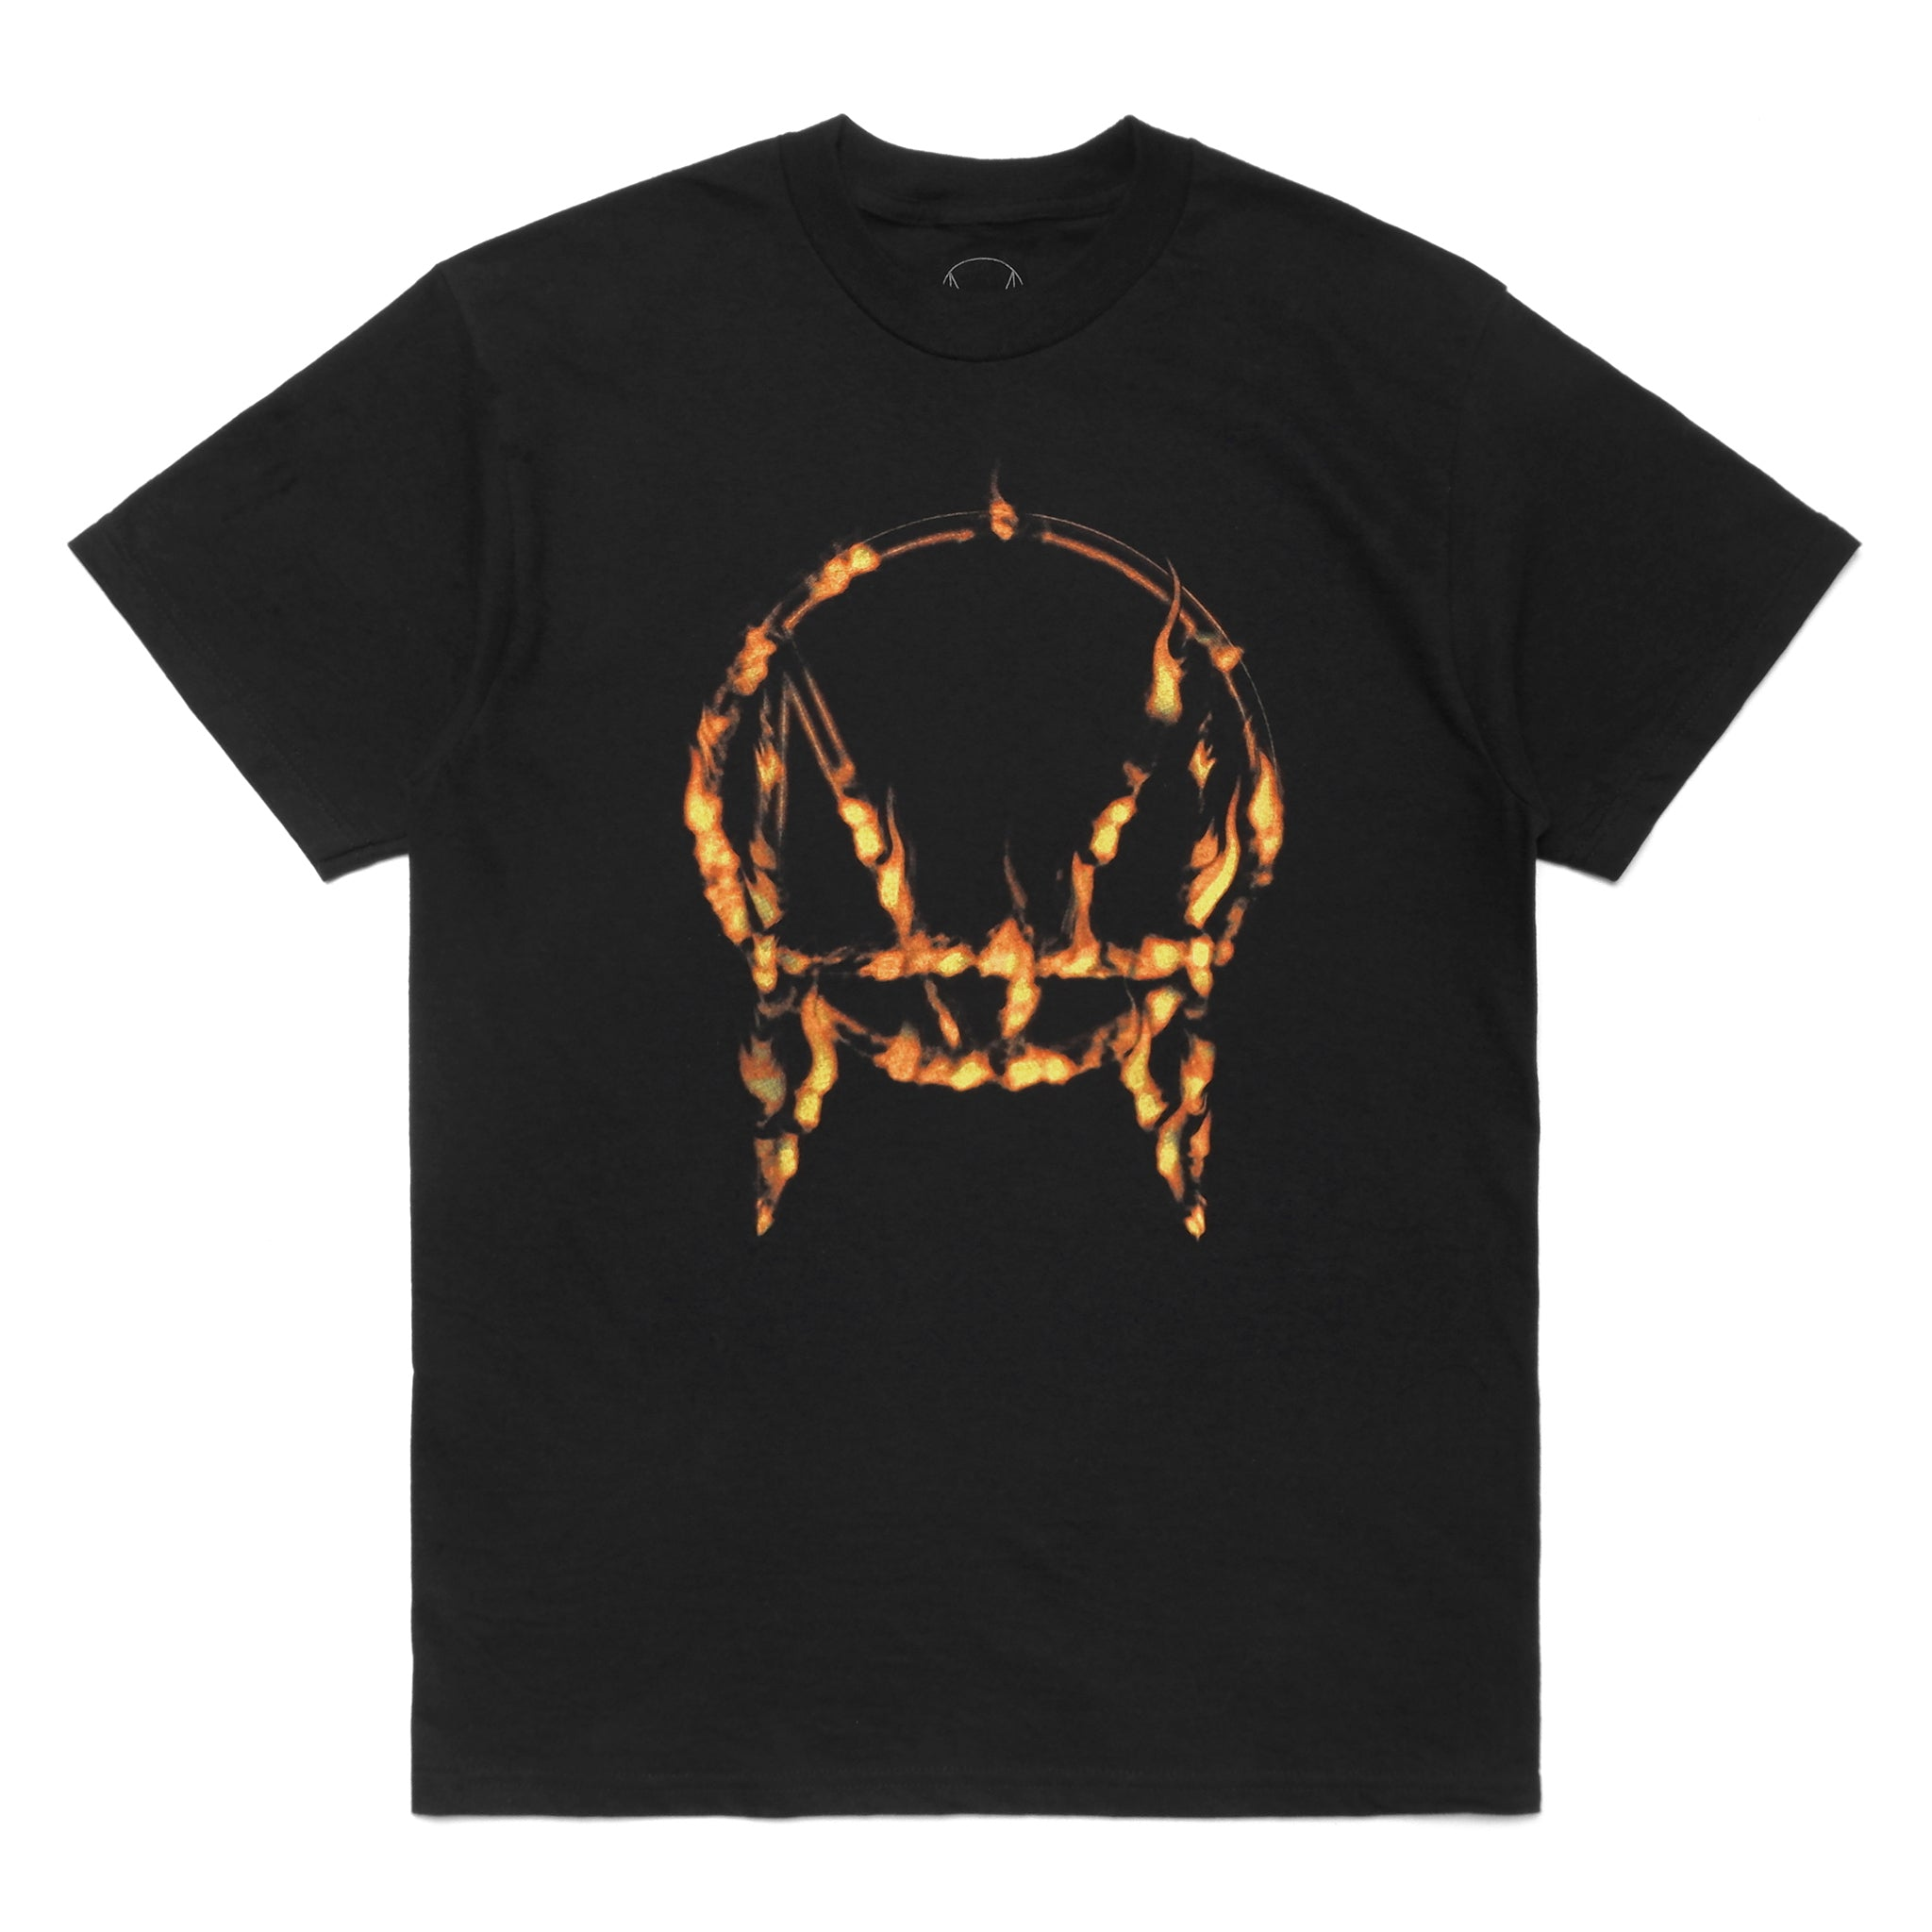 HALLOWEEN LIMITED 'IN FLAMES' TEE - BLACK